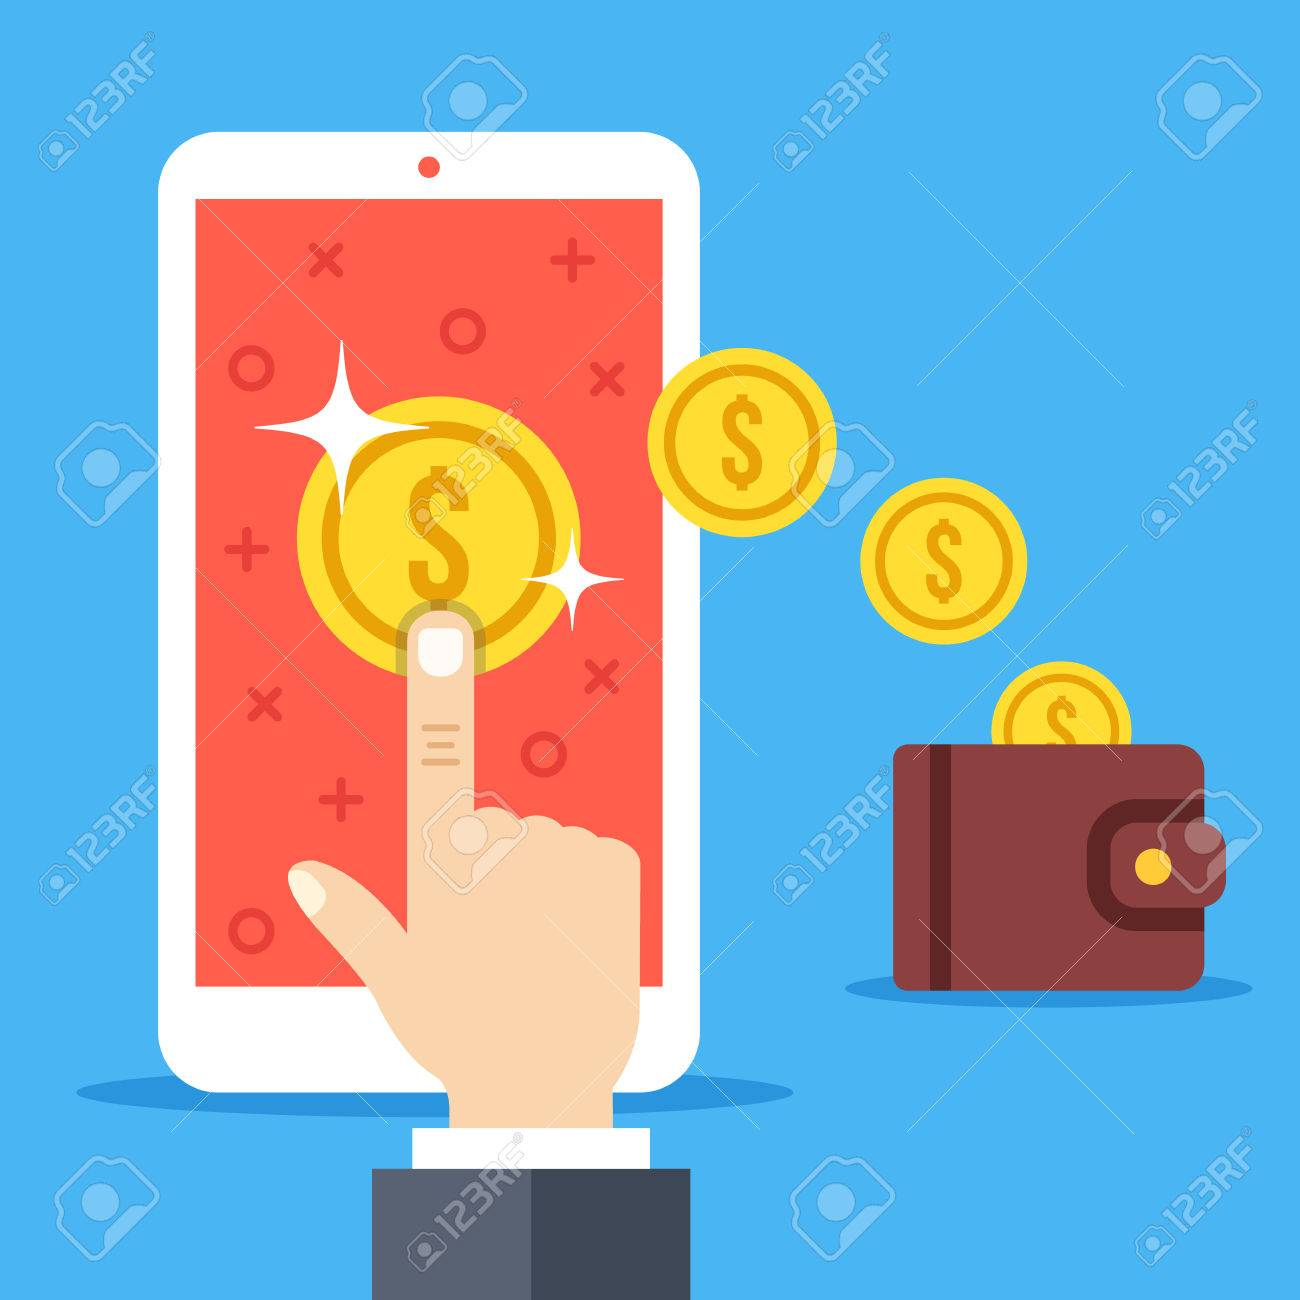 Hand tapping on coin on smartphone screen, gold coins falling